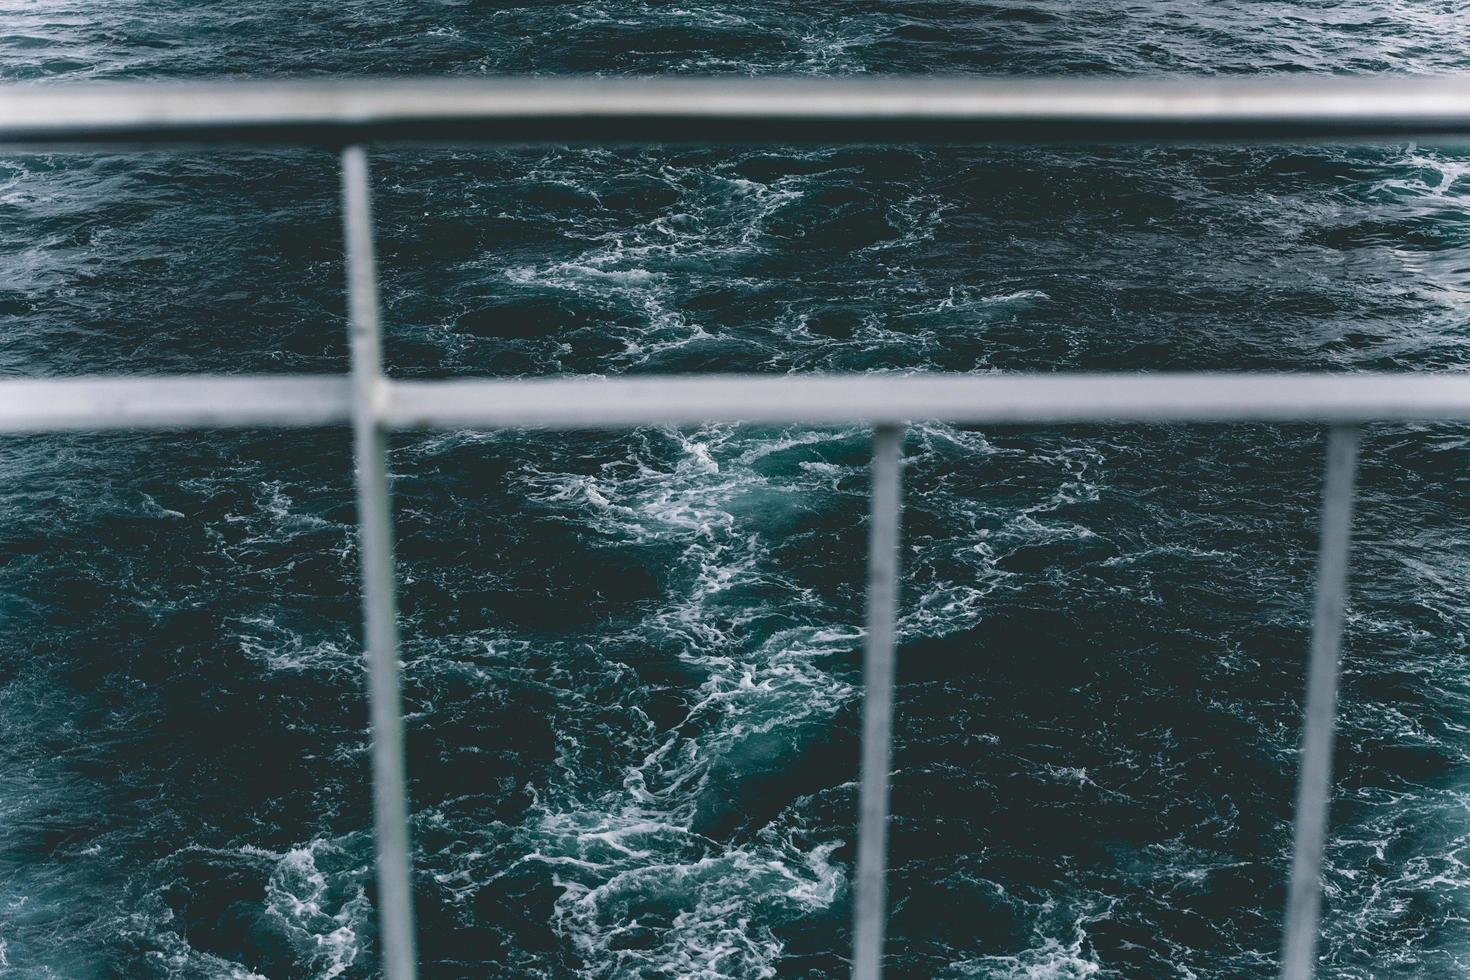 Boat railing, view through, over water photo